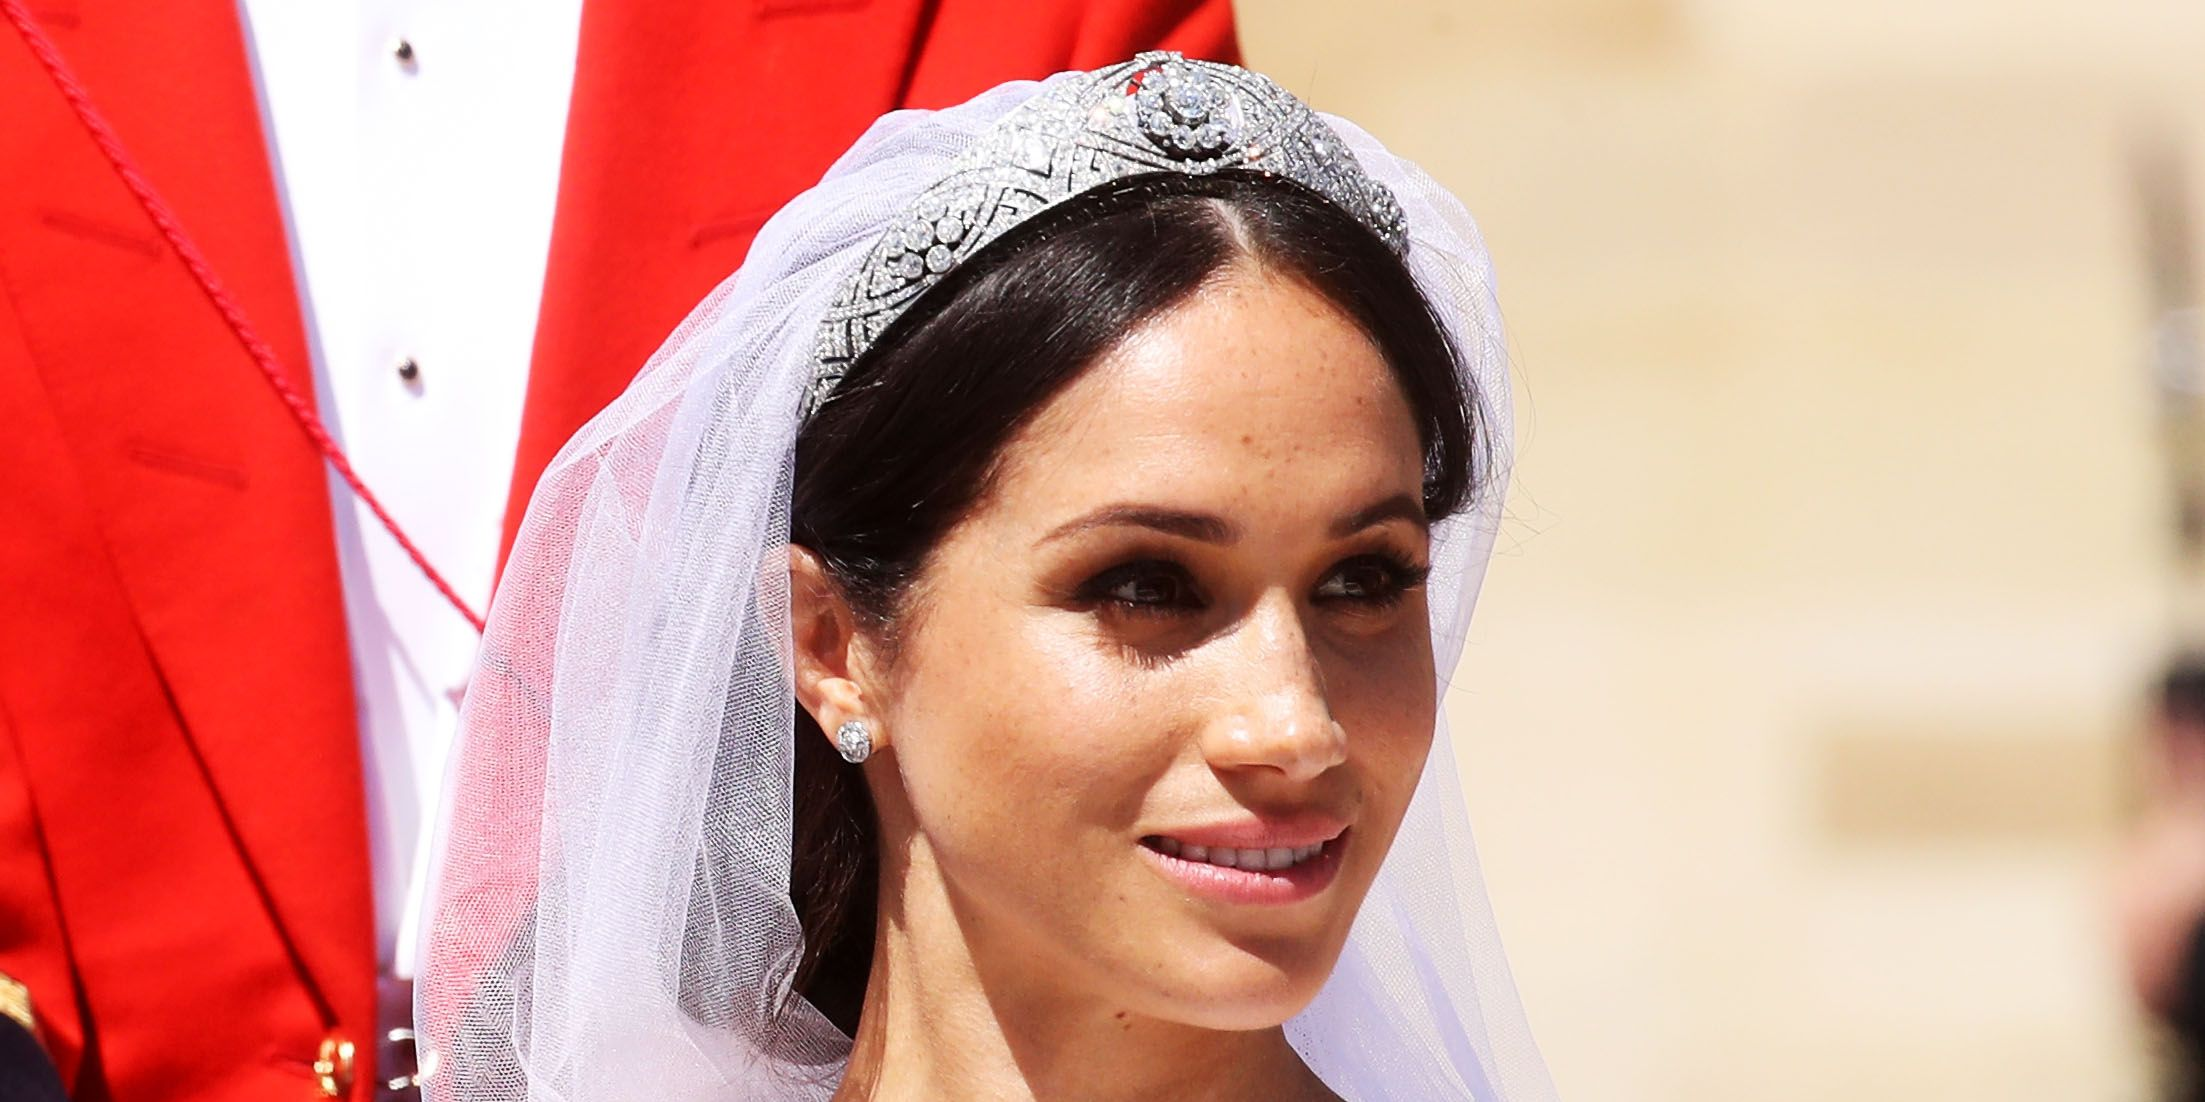 Meghan Markle Royal Wedding Hair And Make-Up